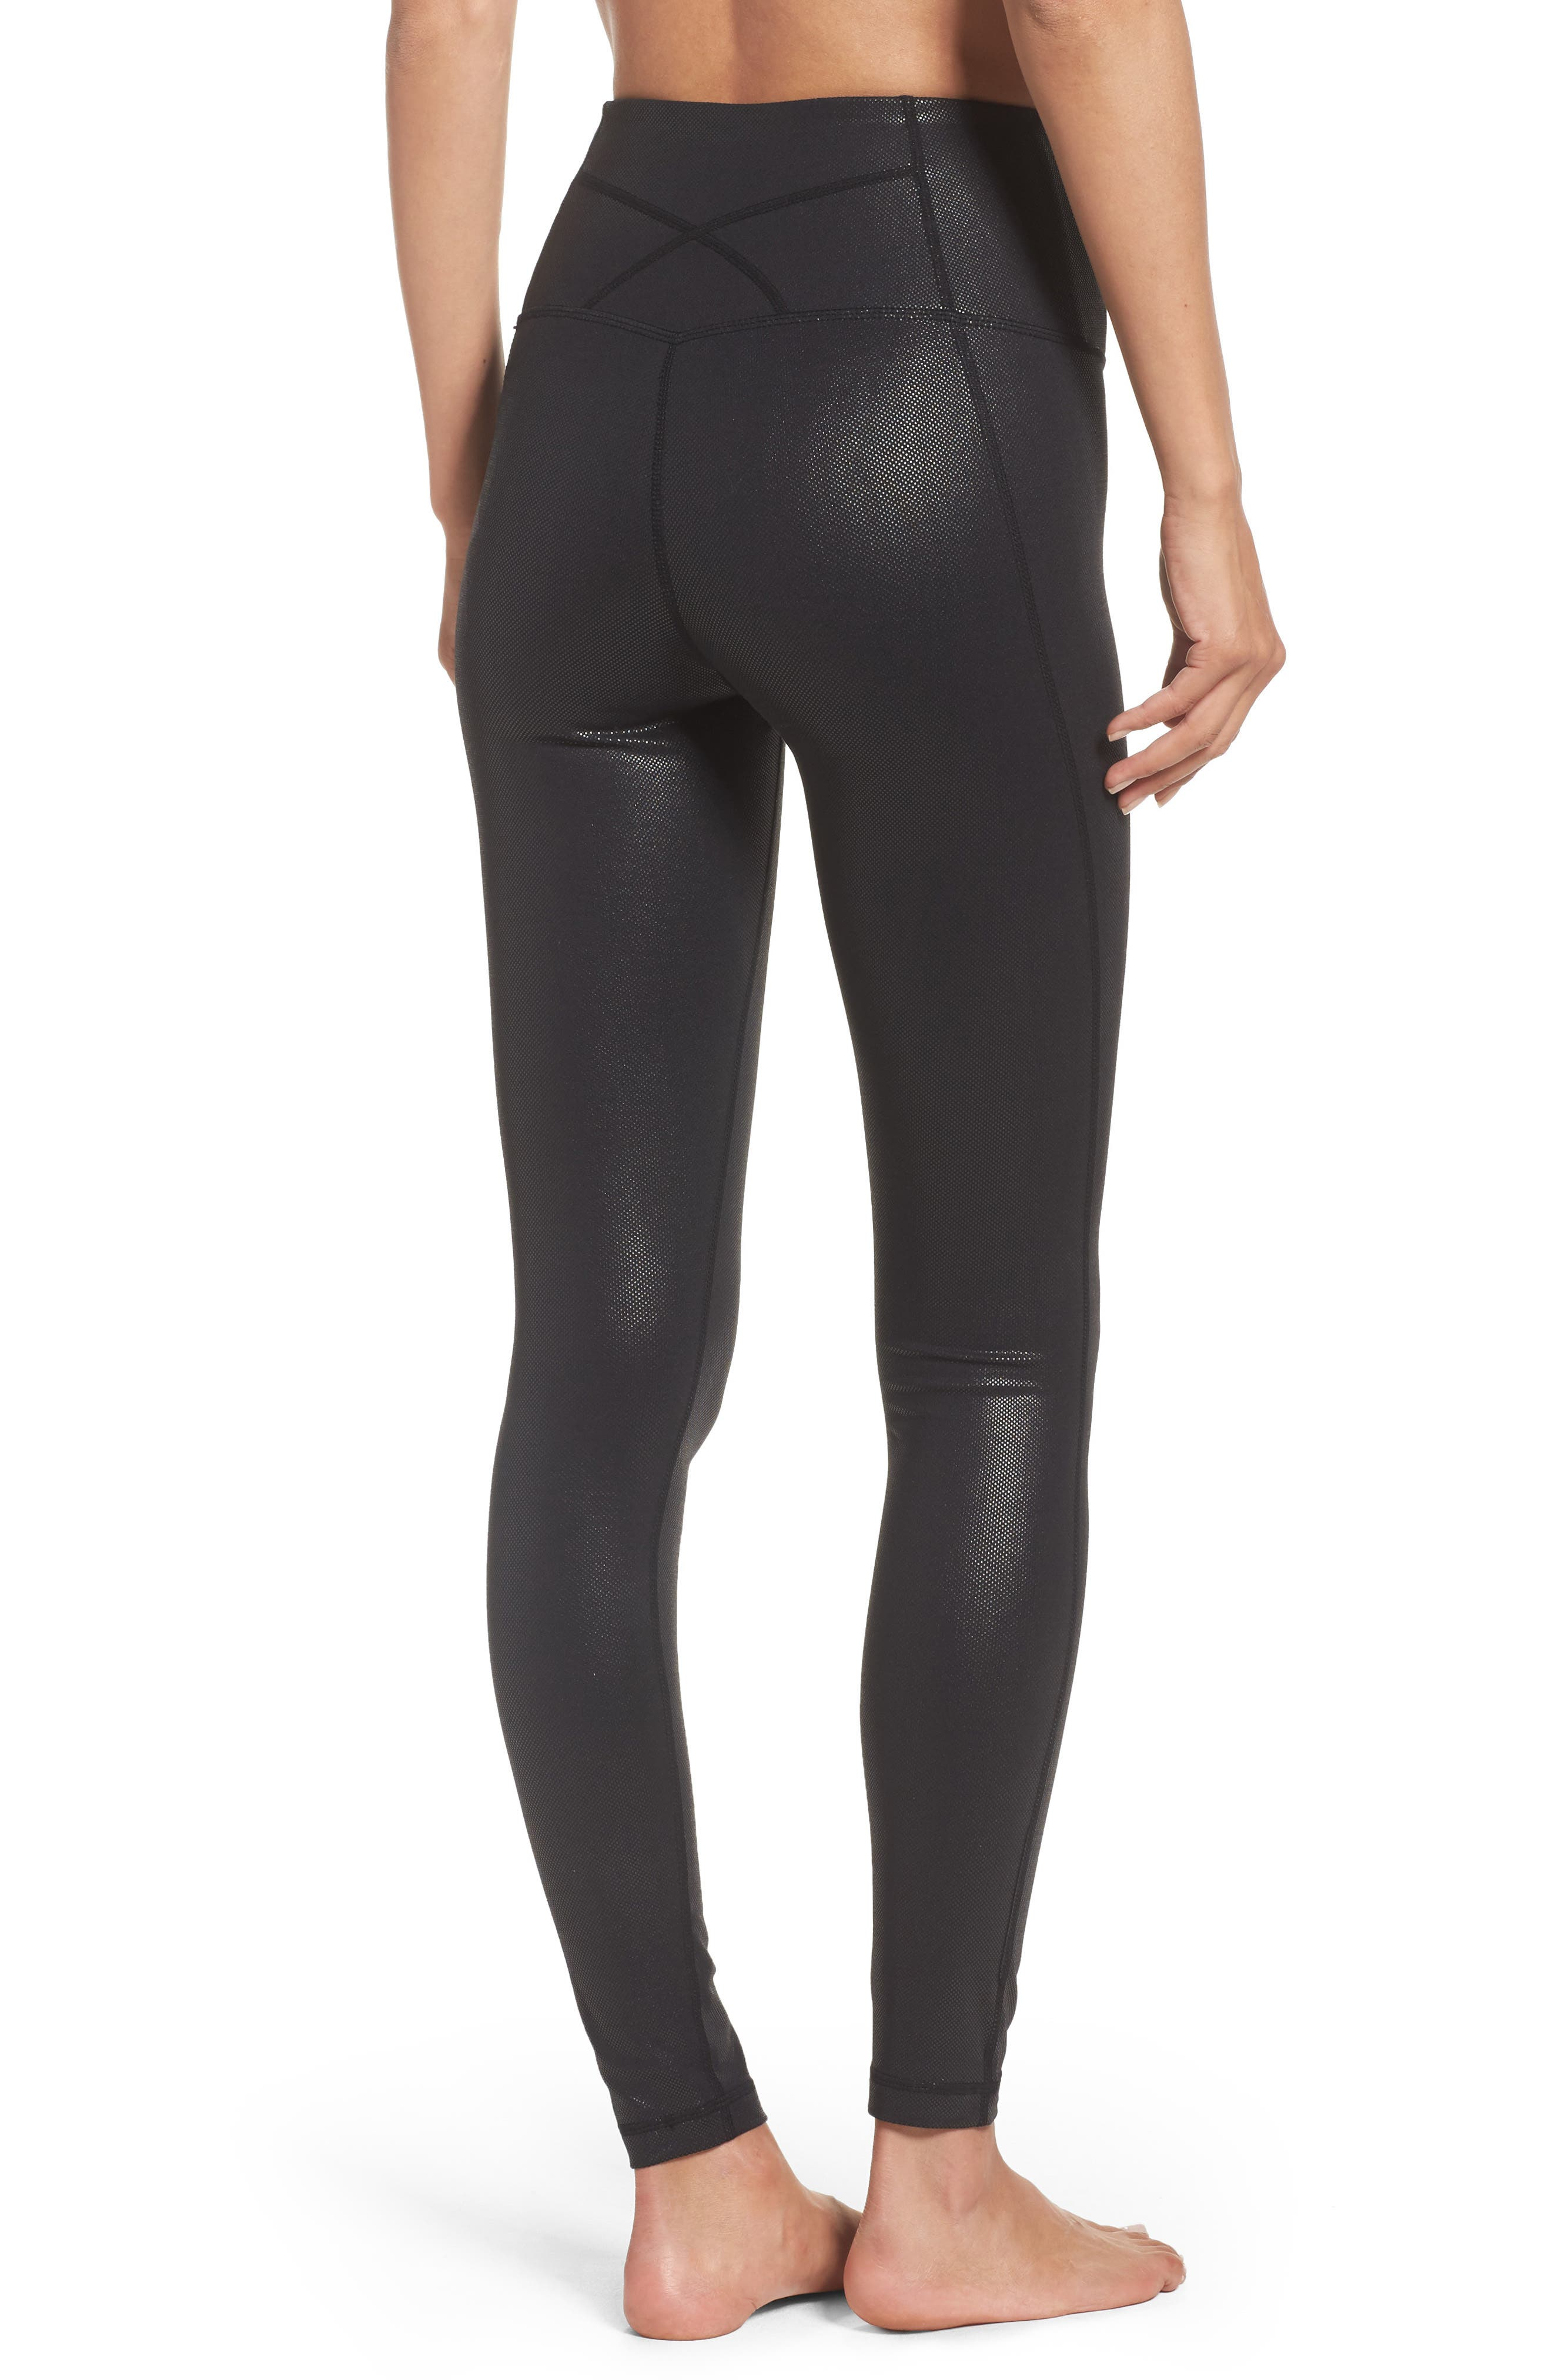 Live-In High Waist Leggings,                             Alternate thumbnail 2, color,                             002